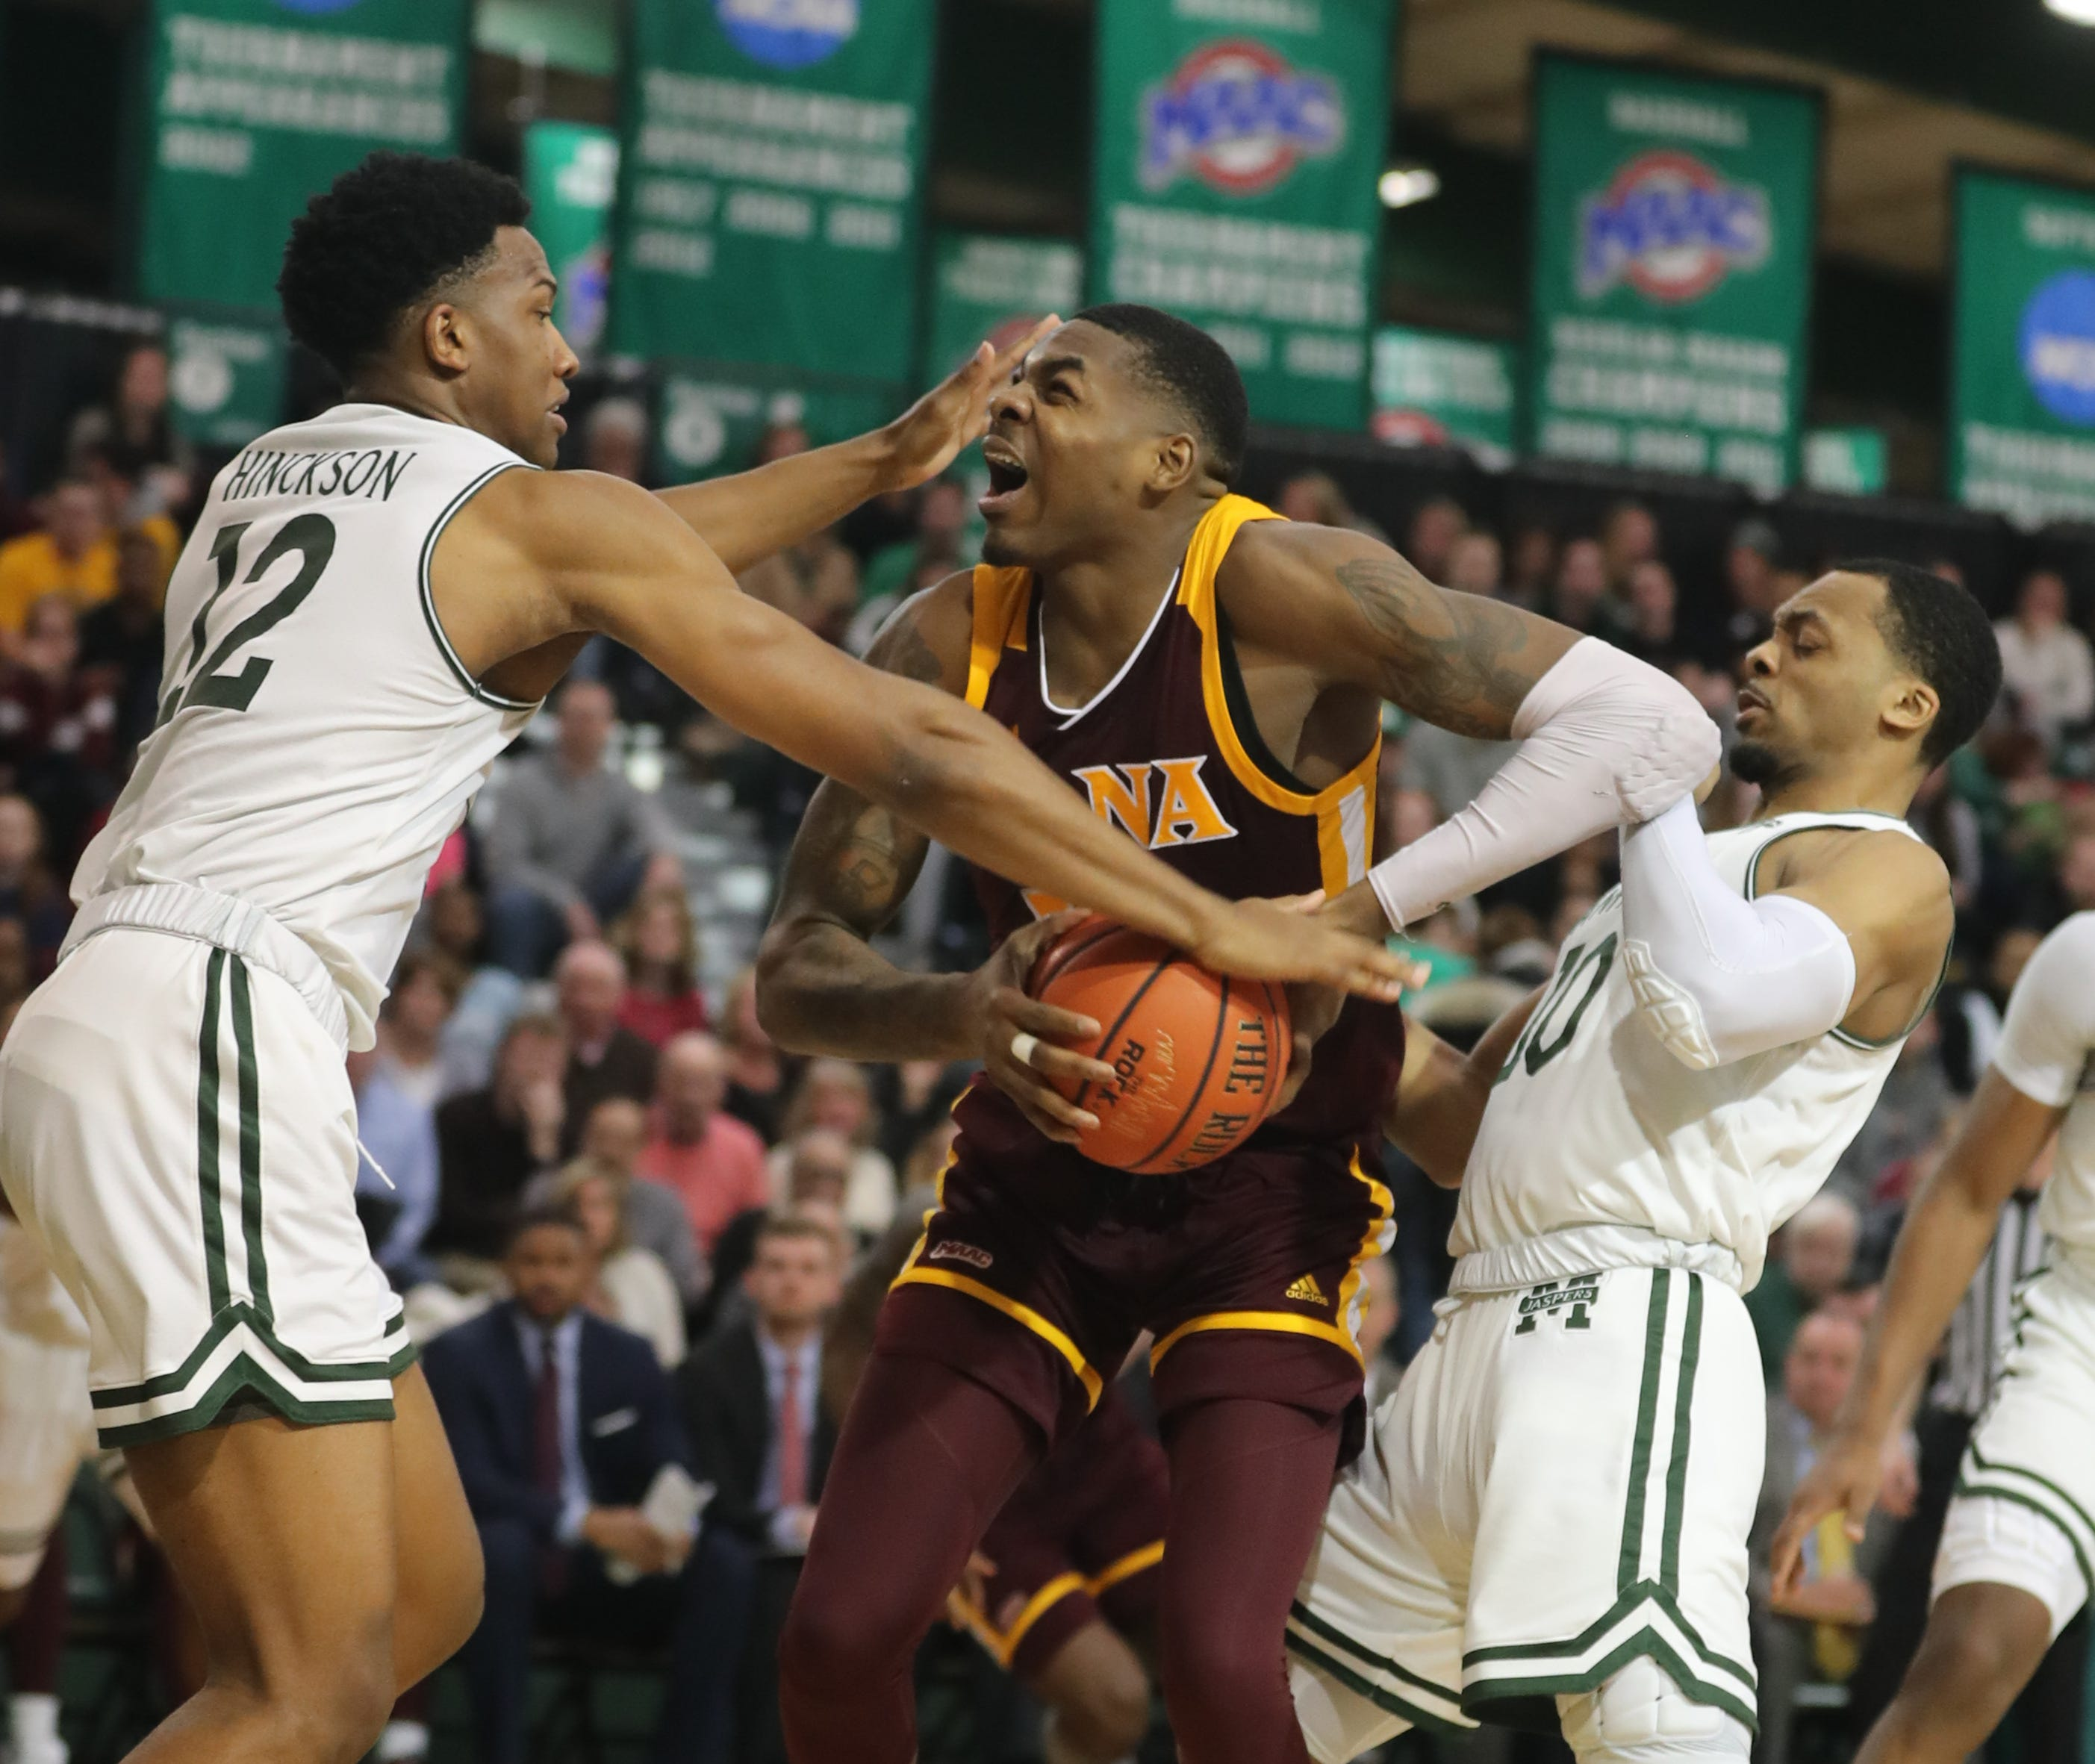 d7cf1437a486 Men s college basketball  Iona falls just short against Siena